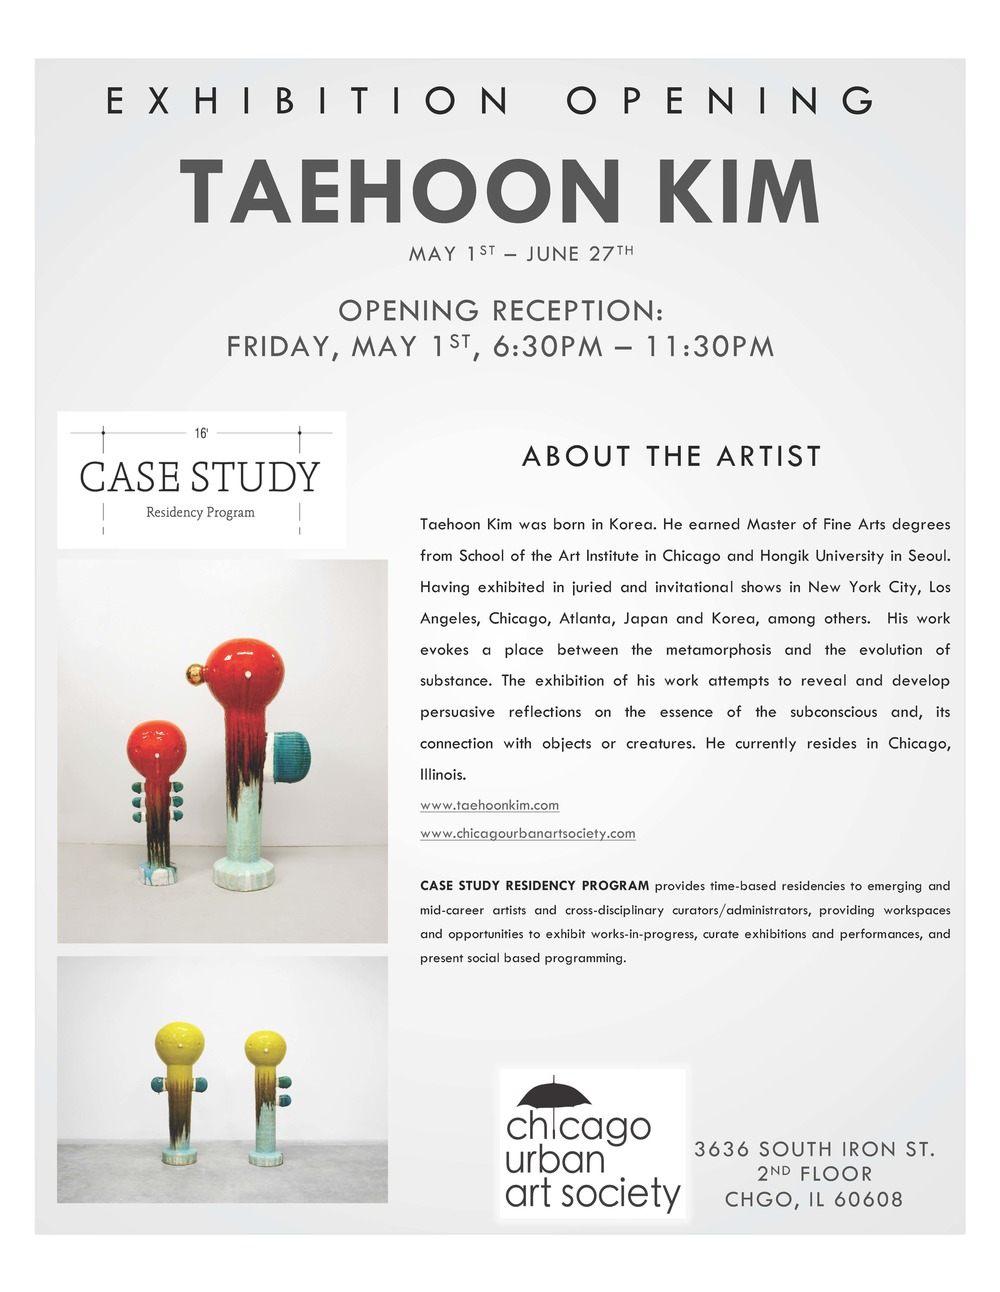 TAEHOON KIM CASE STUDY EXHIBIT OPENING MAY 1ST.jpg